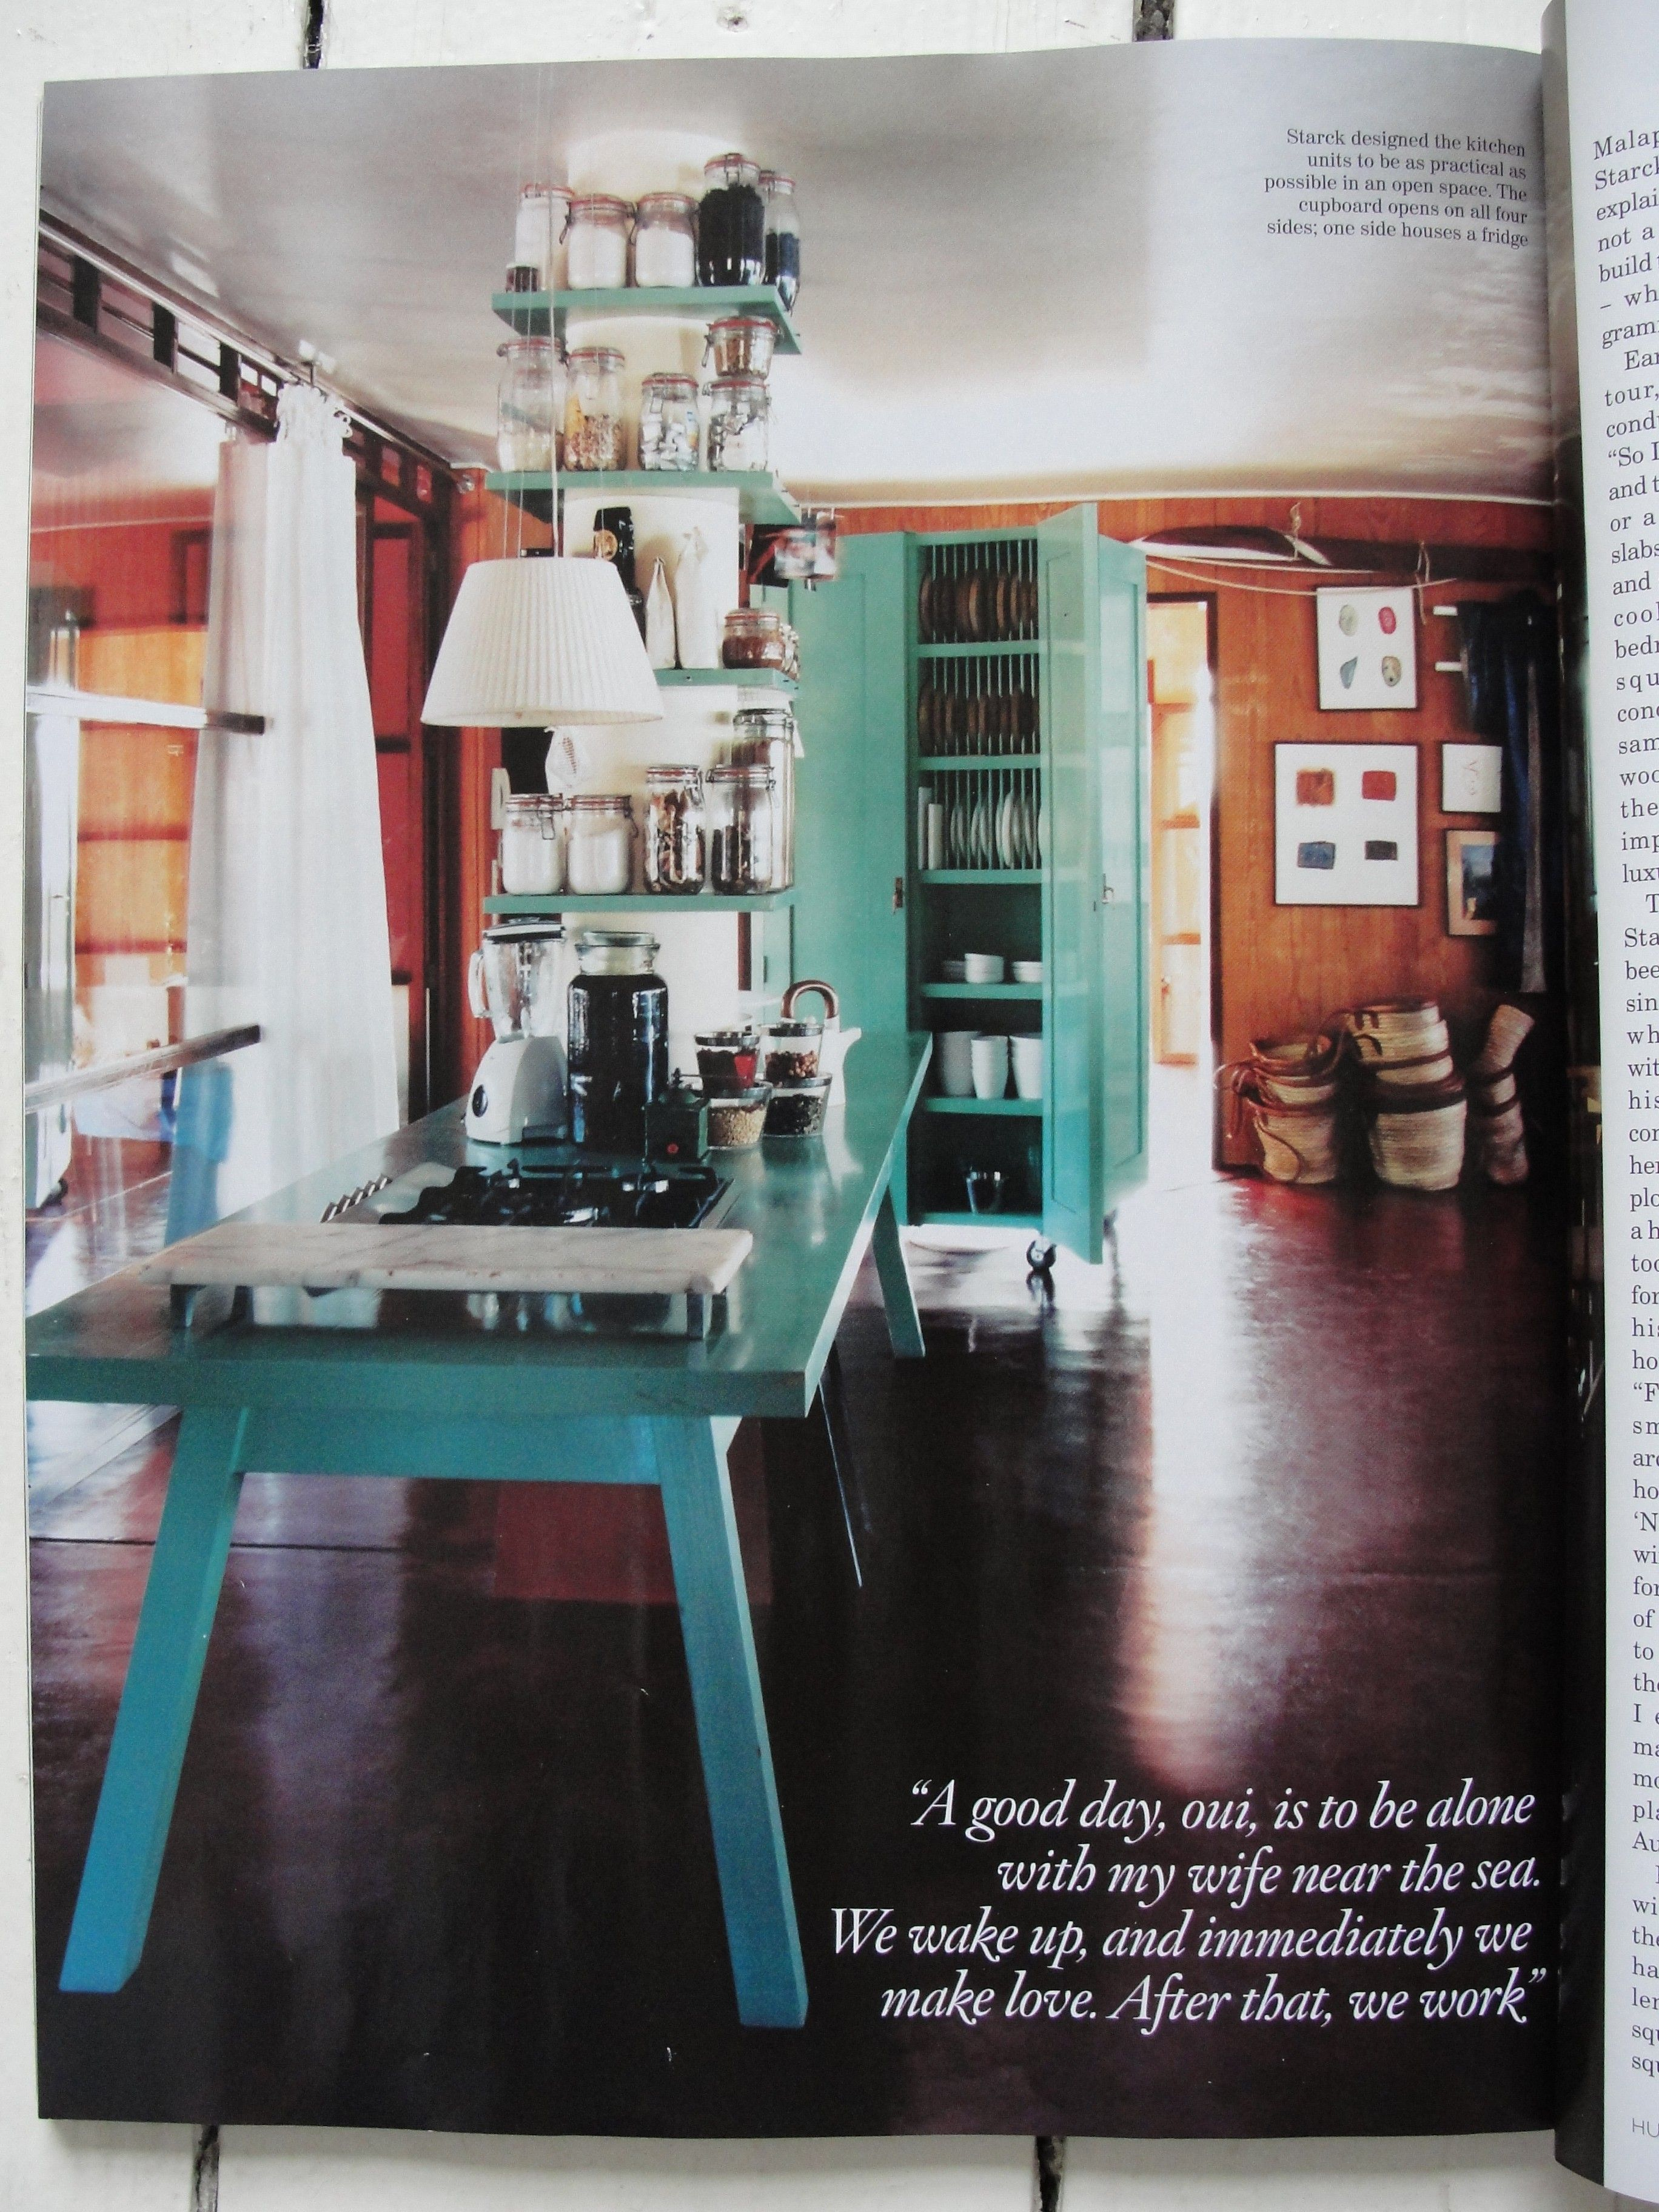 PLATE STORAGE inside!  also, Not-quite full height look: Philippe Starck's kitchen in his Balearic islands home